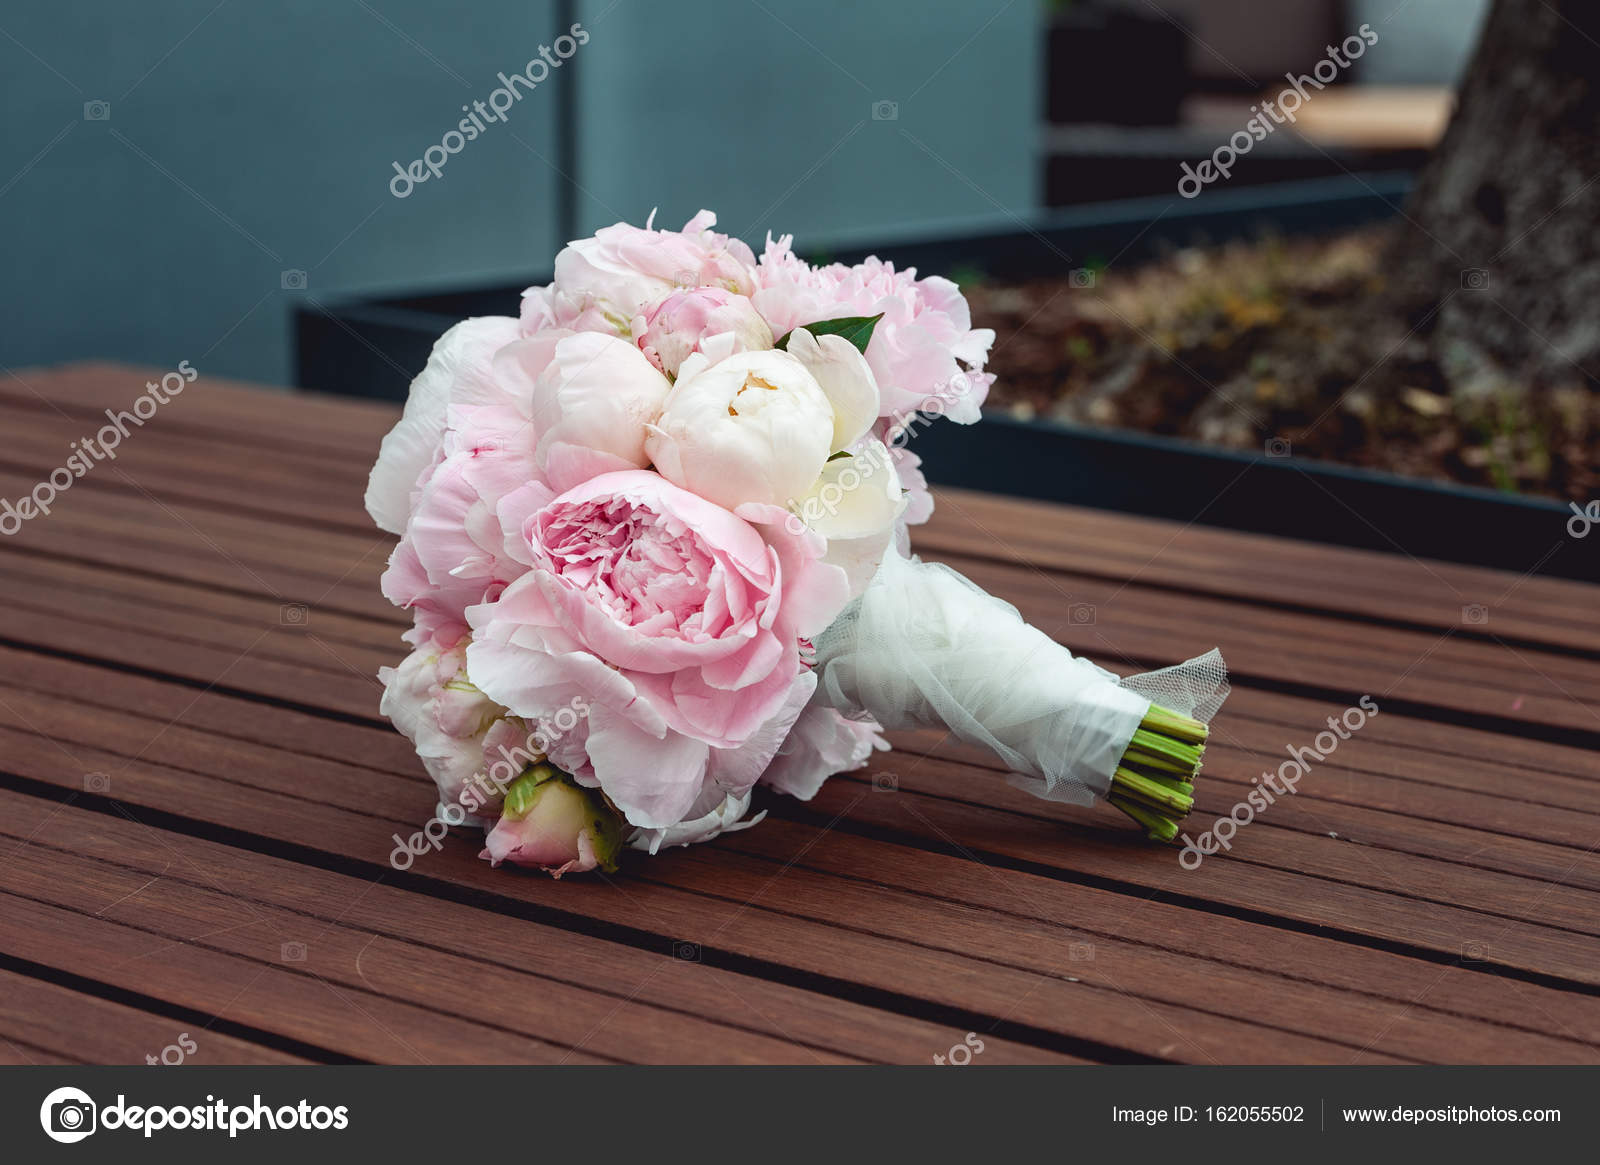 Bouquet Sposa Rose E Peonie.Luxurious Bridal Bouquet Of White Peonies And Roses On The Bench